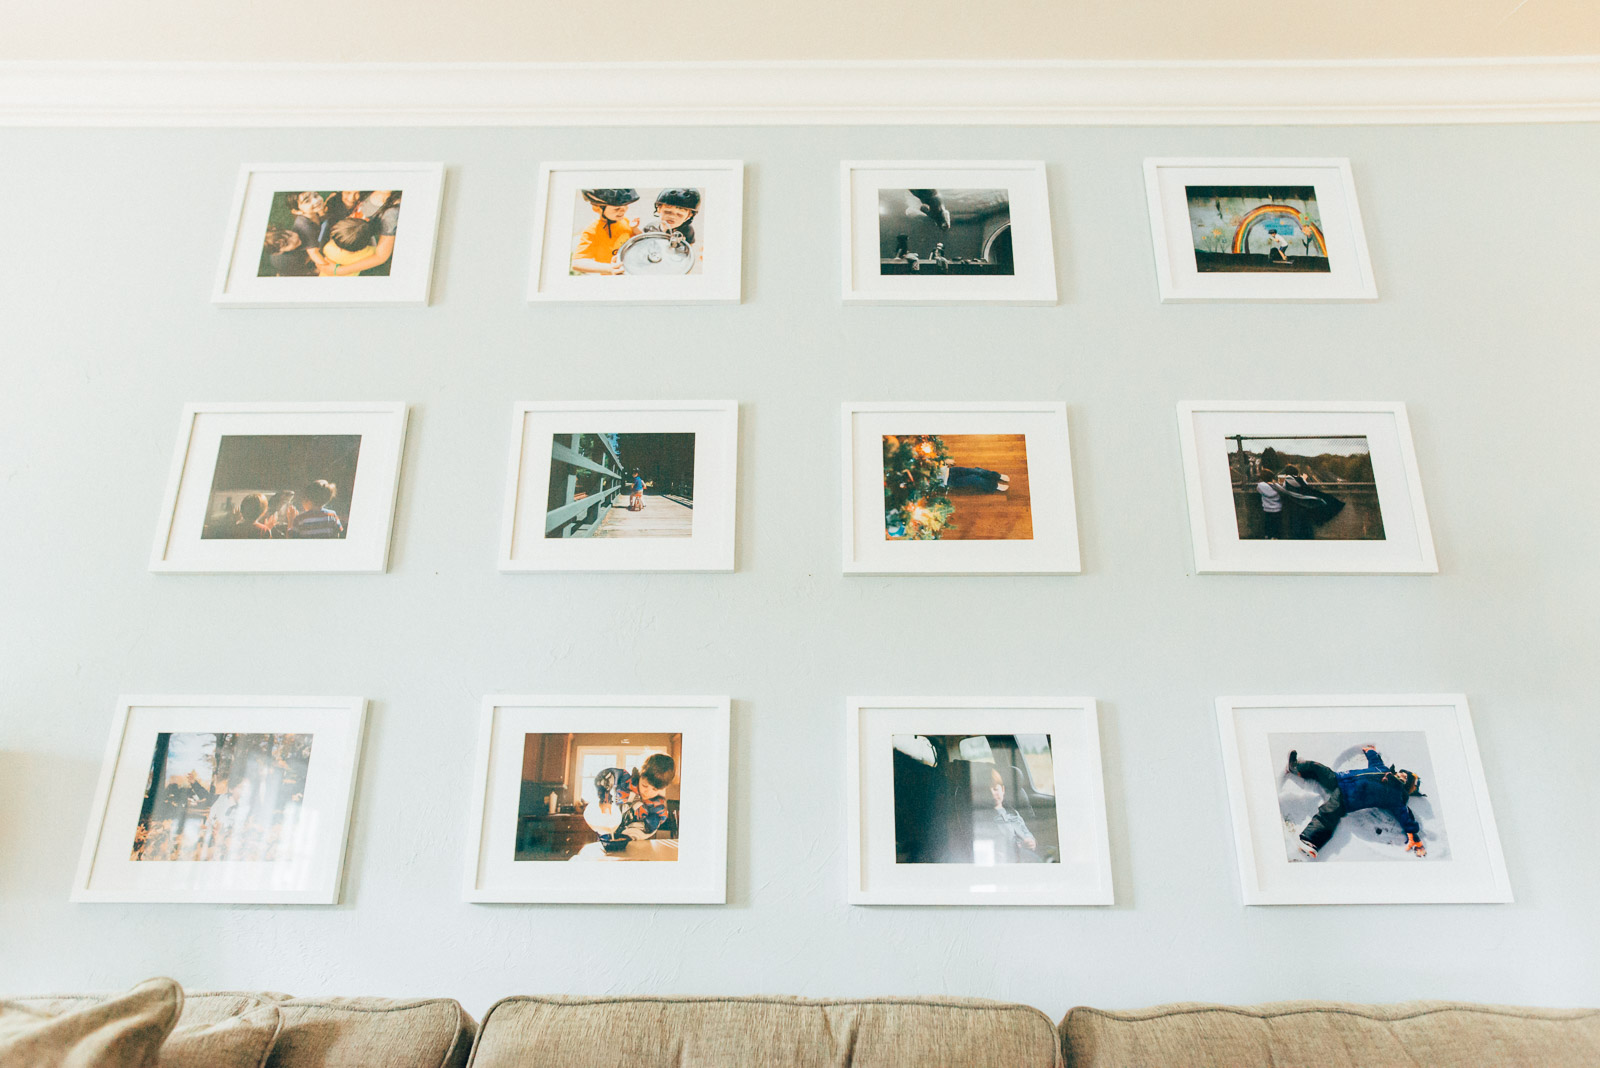 framed gallery wall in living room by Andrea Moffatt